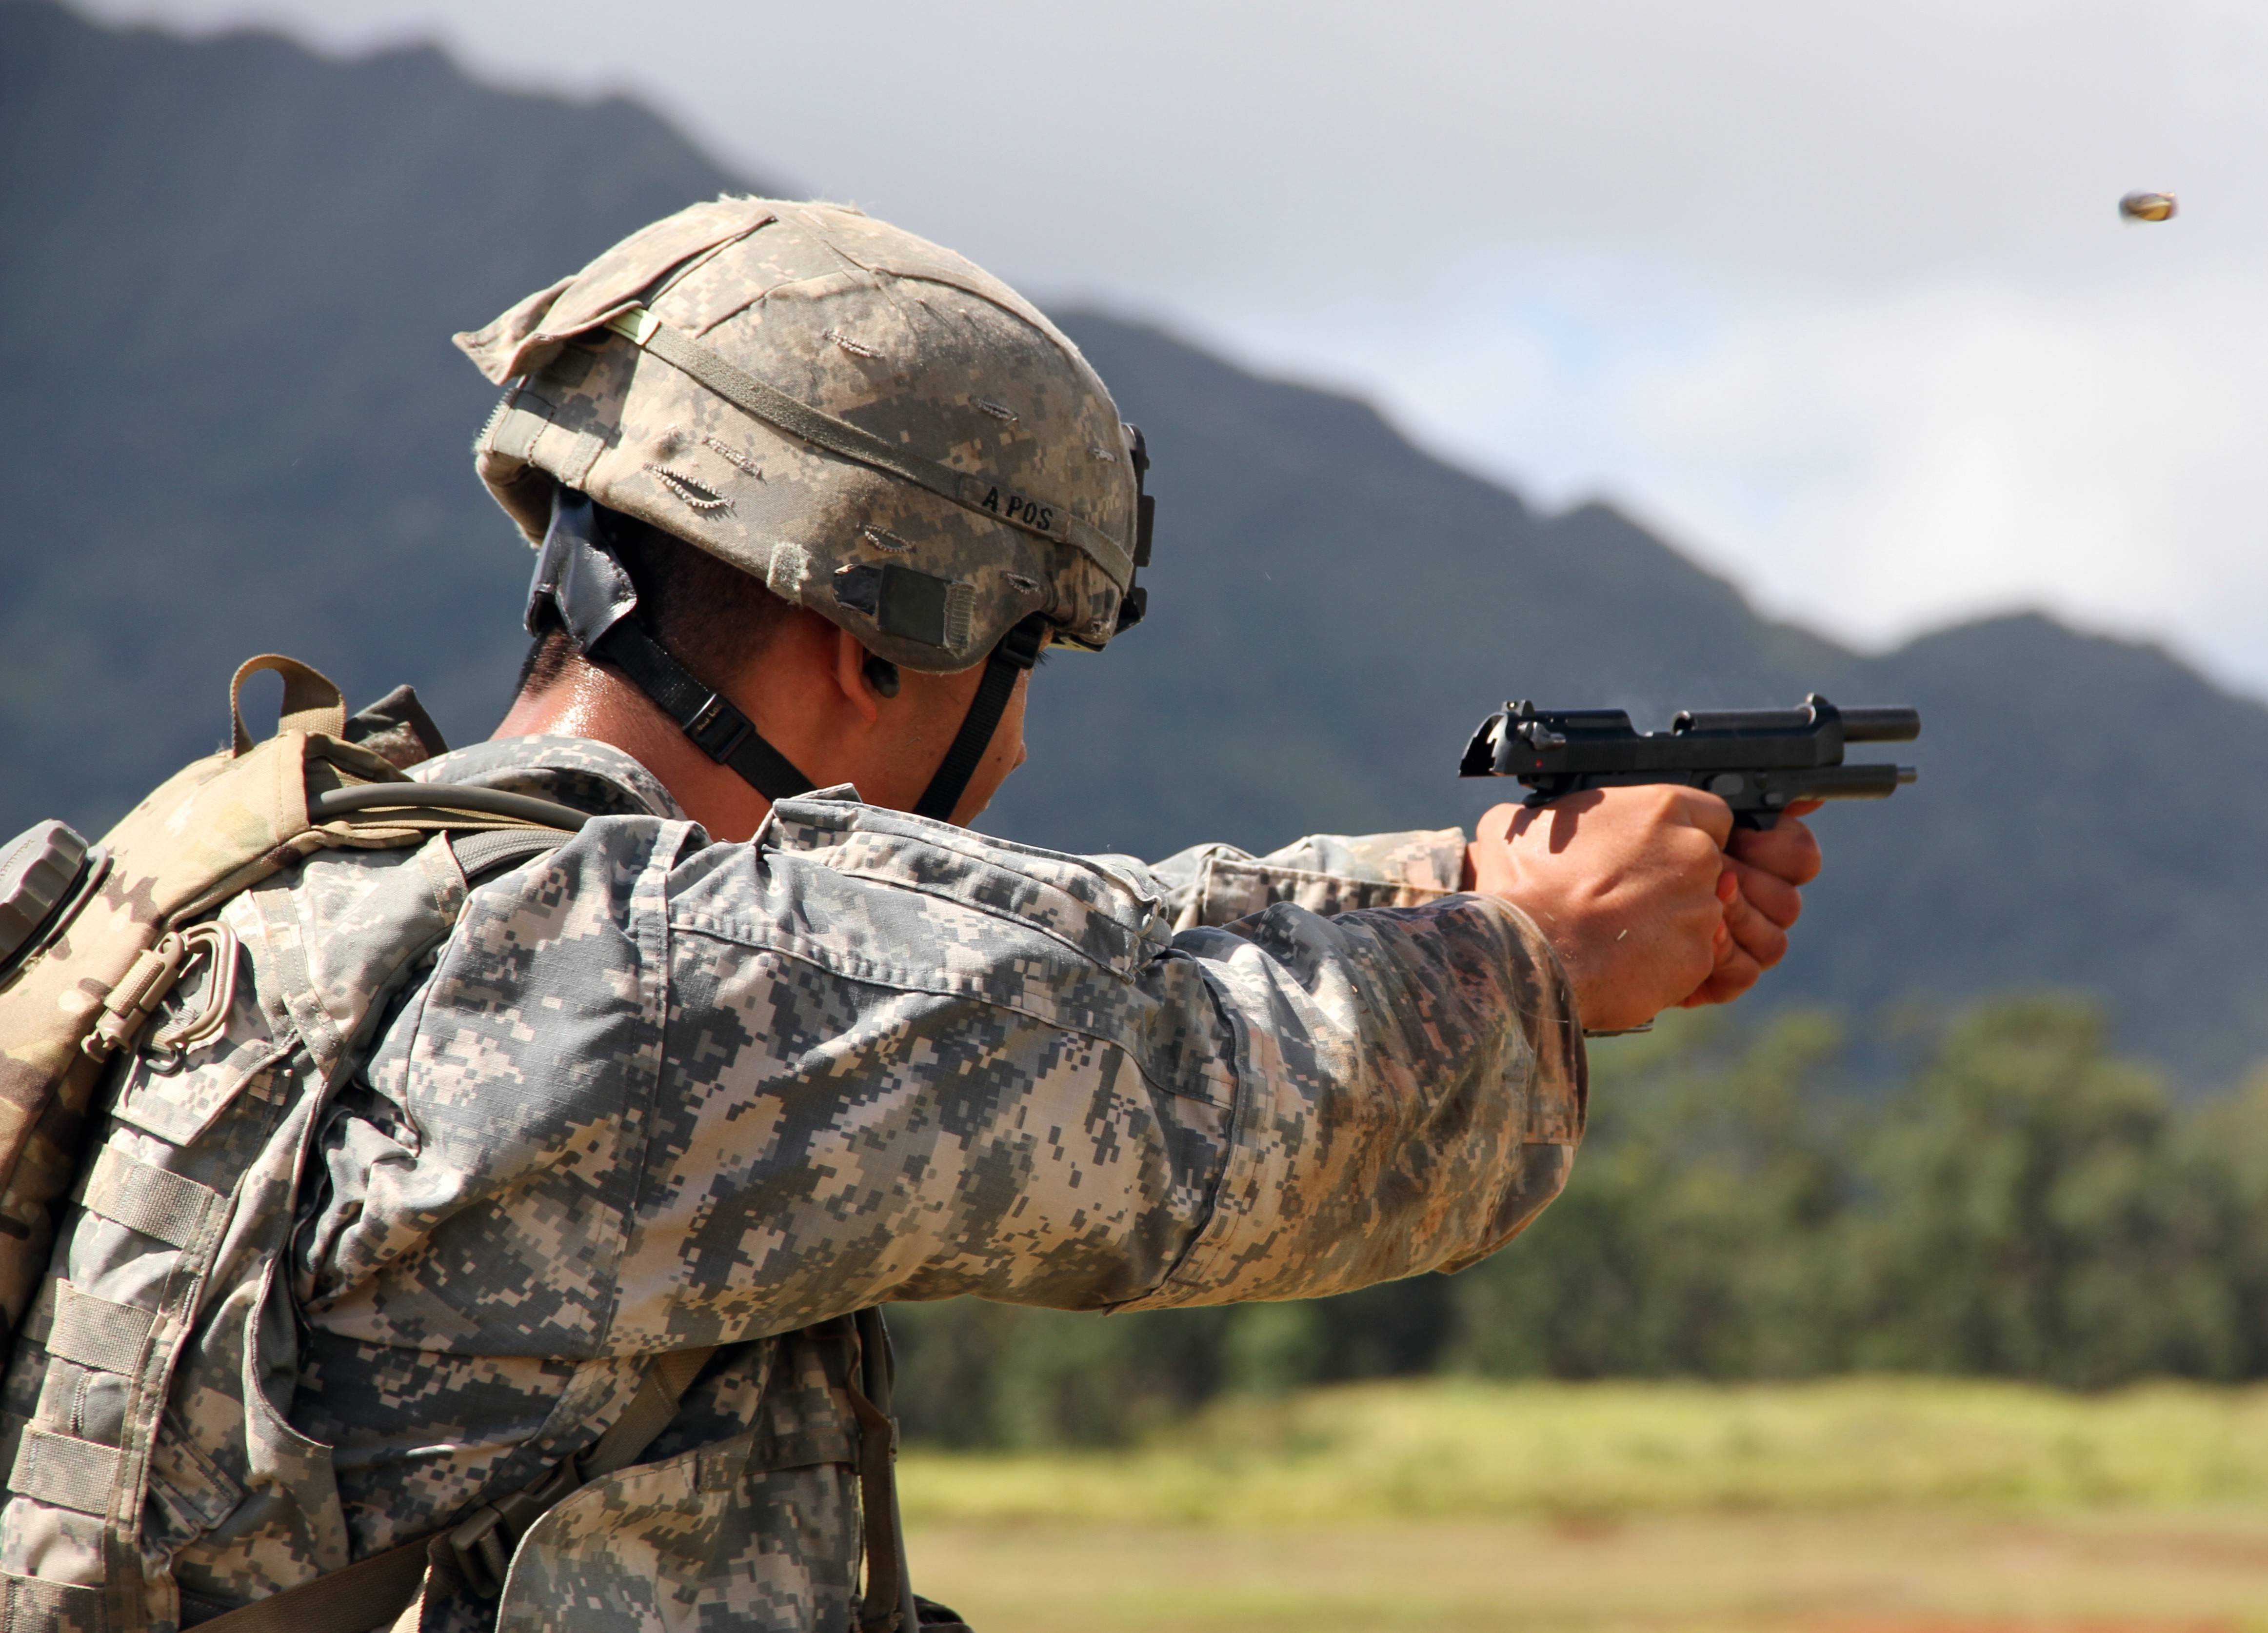 Above - a U.S. Army soldier shoots an M-9. At top - a Special Forces soldier takes part in a competition in Colombia with his Glock. Army photos